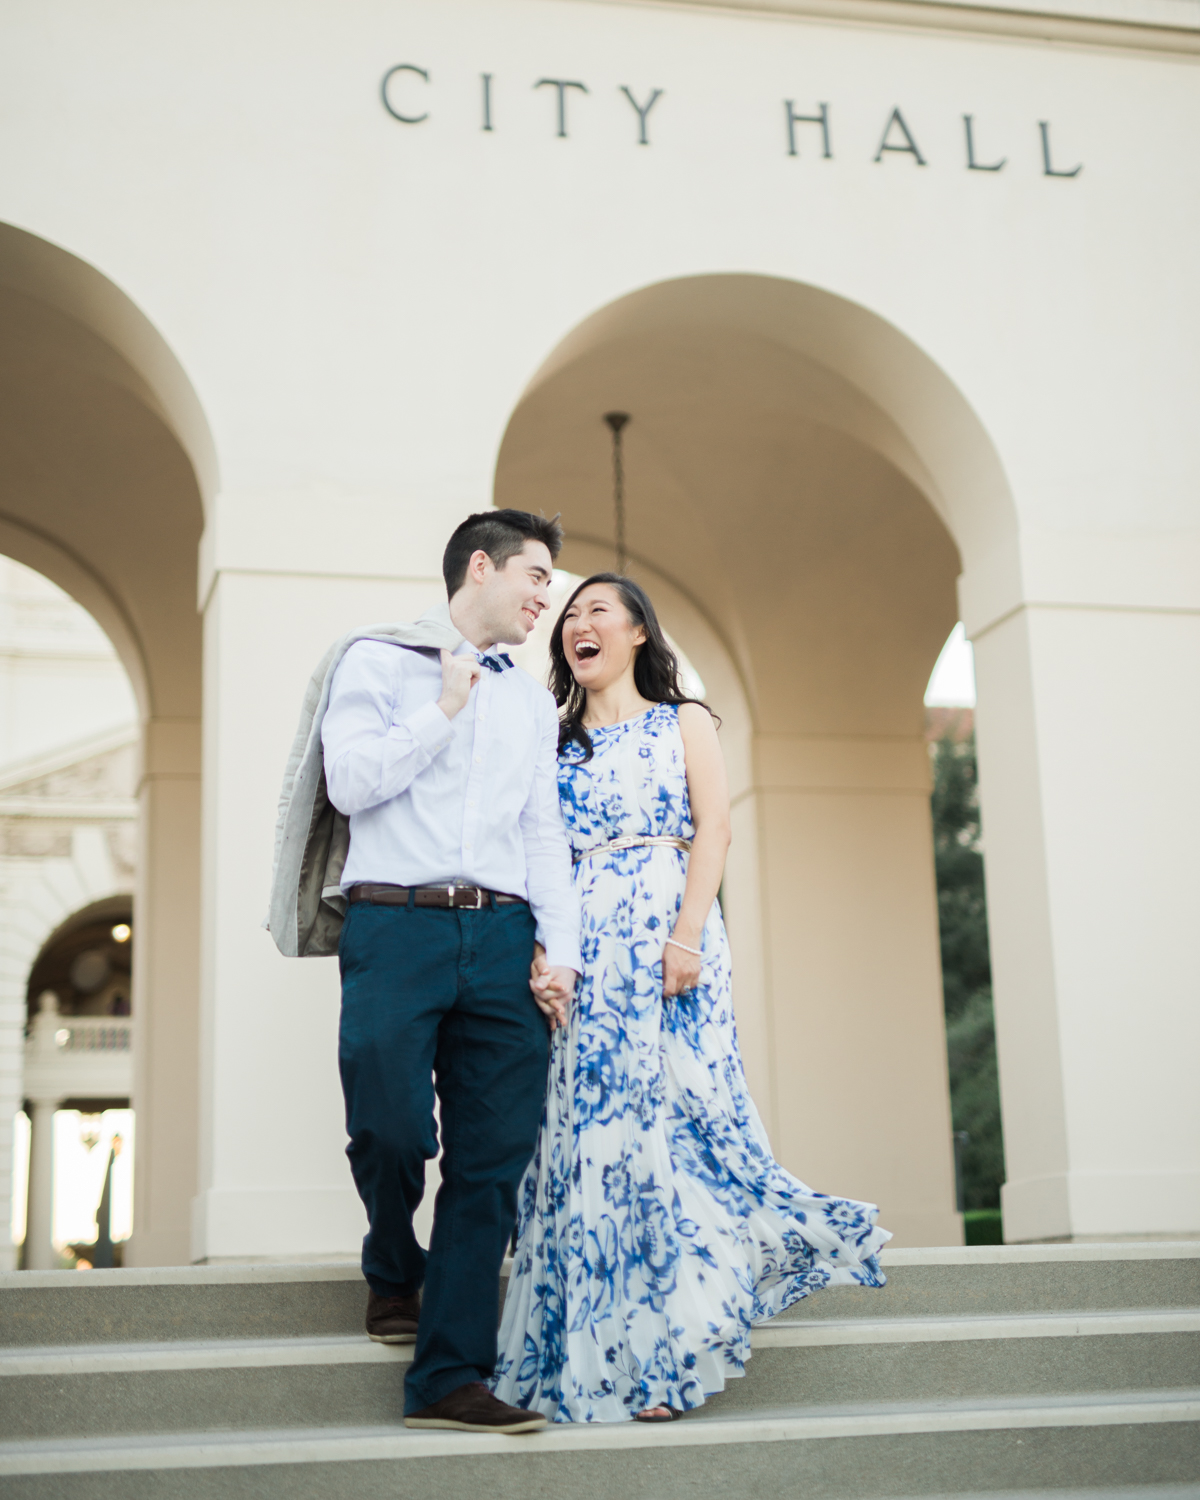 pasadena_city_hall_engagement_session_wedding_photographer_los_angeles-15.jpg